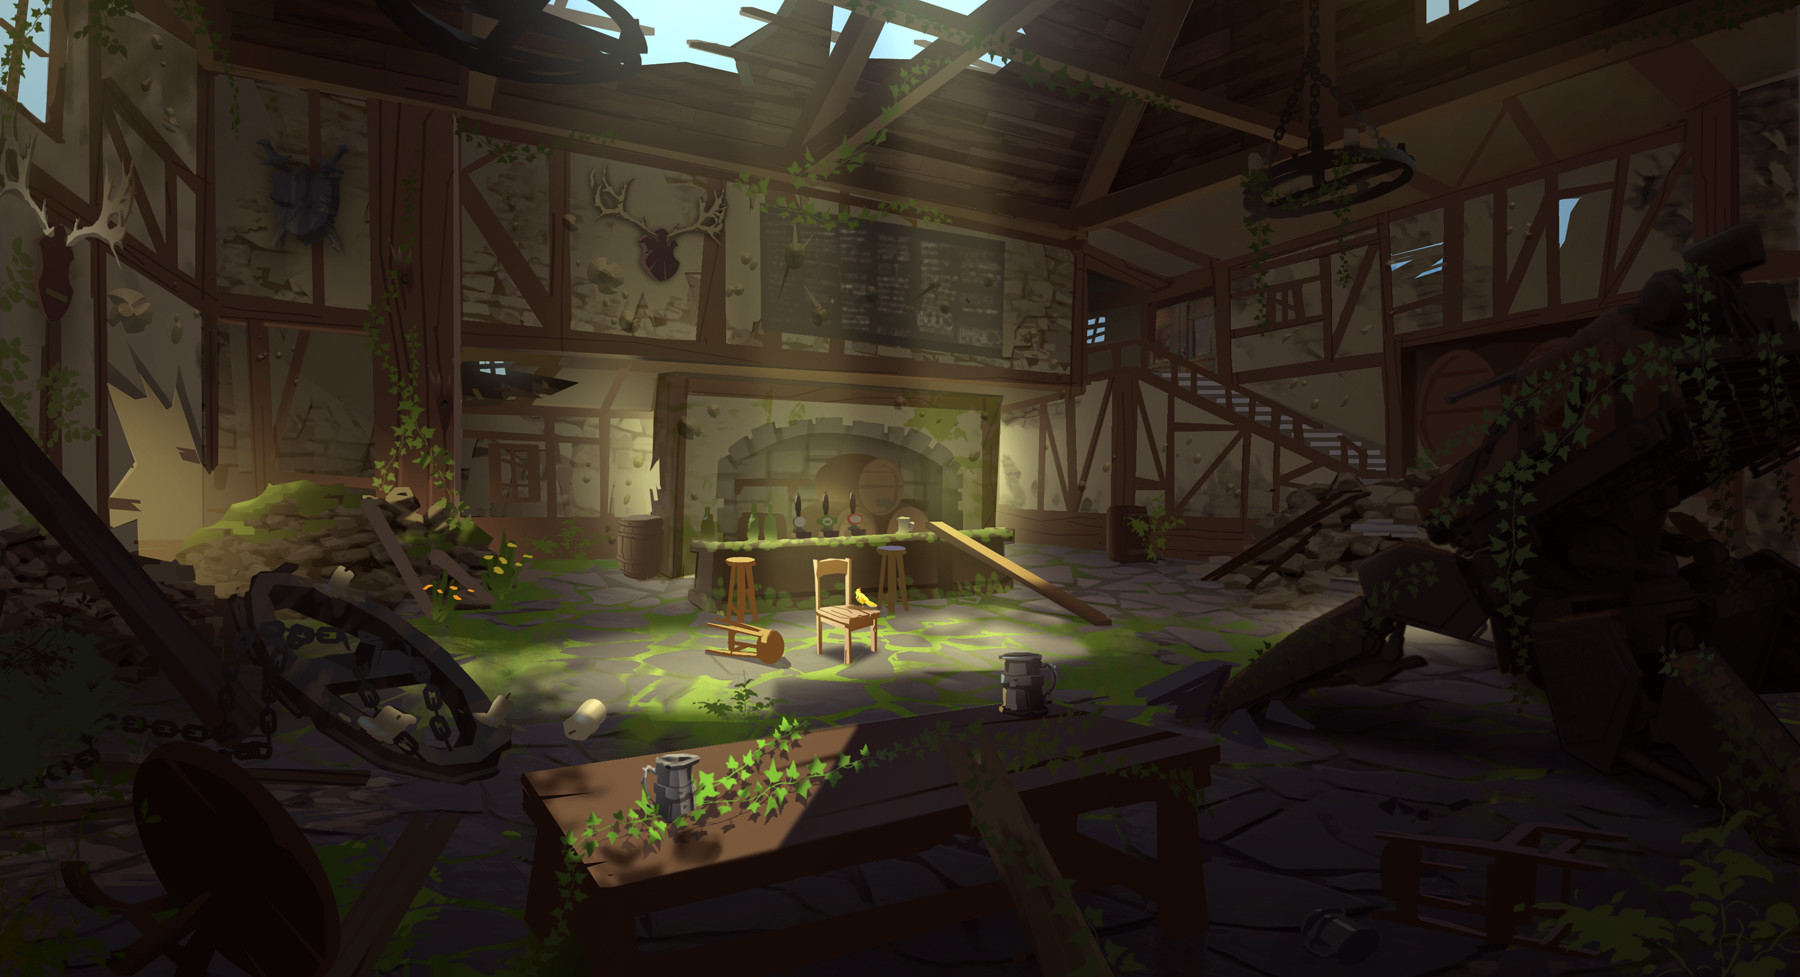 Overwatch Concept Art By Nick Carver 143 Escape The Level